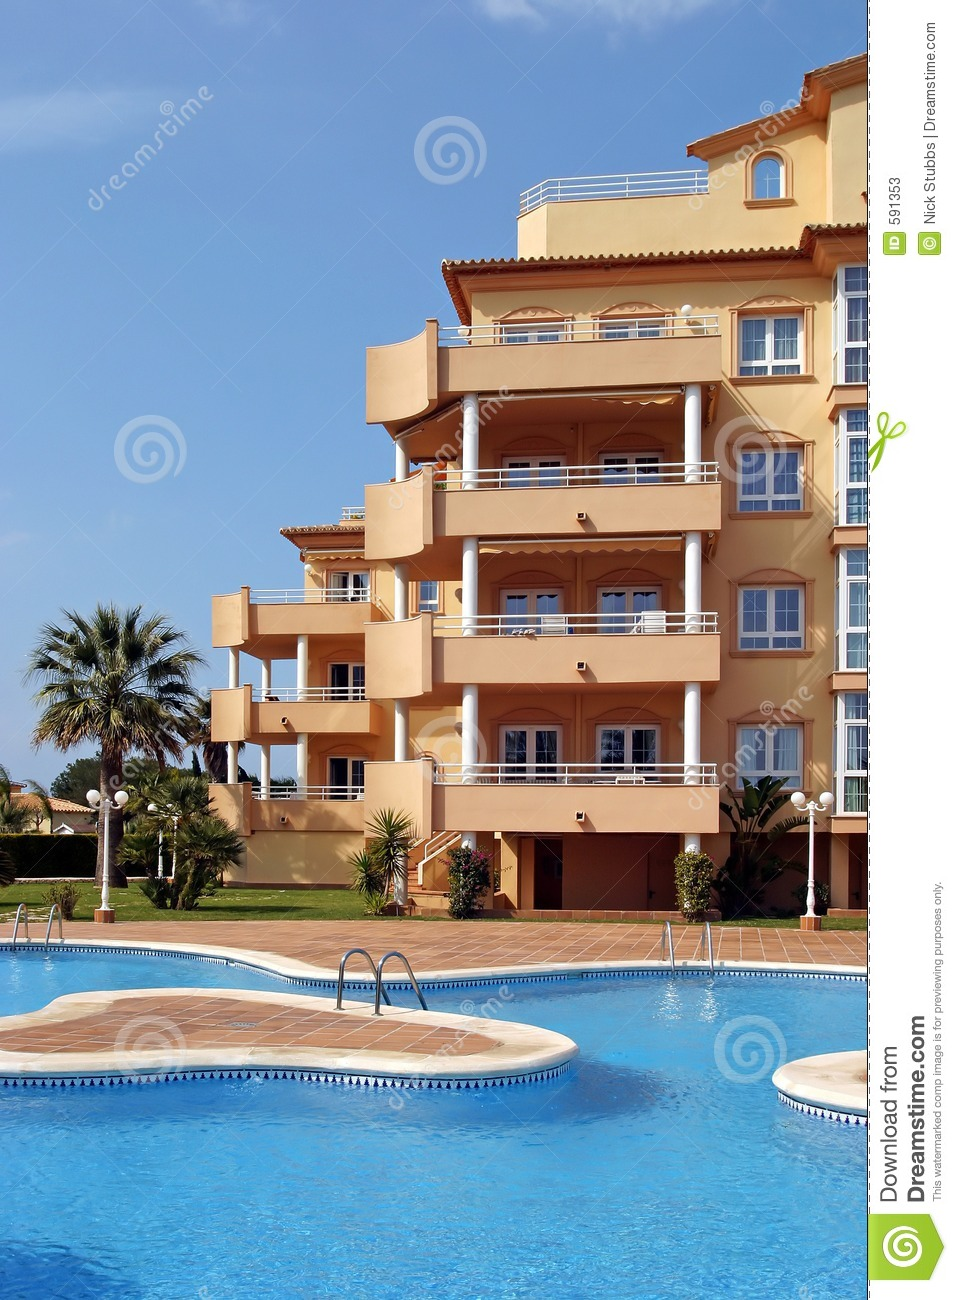 Exterior Of Luxury Holiday Or Vacation Apartments In Spain Stock.